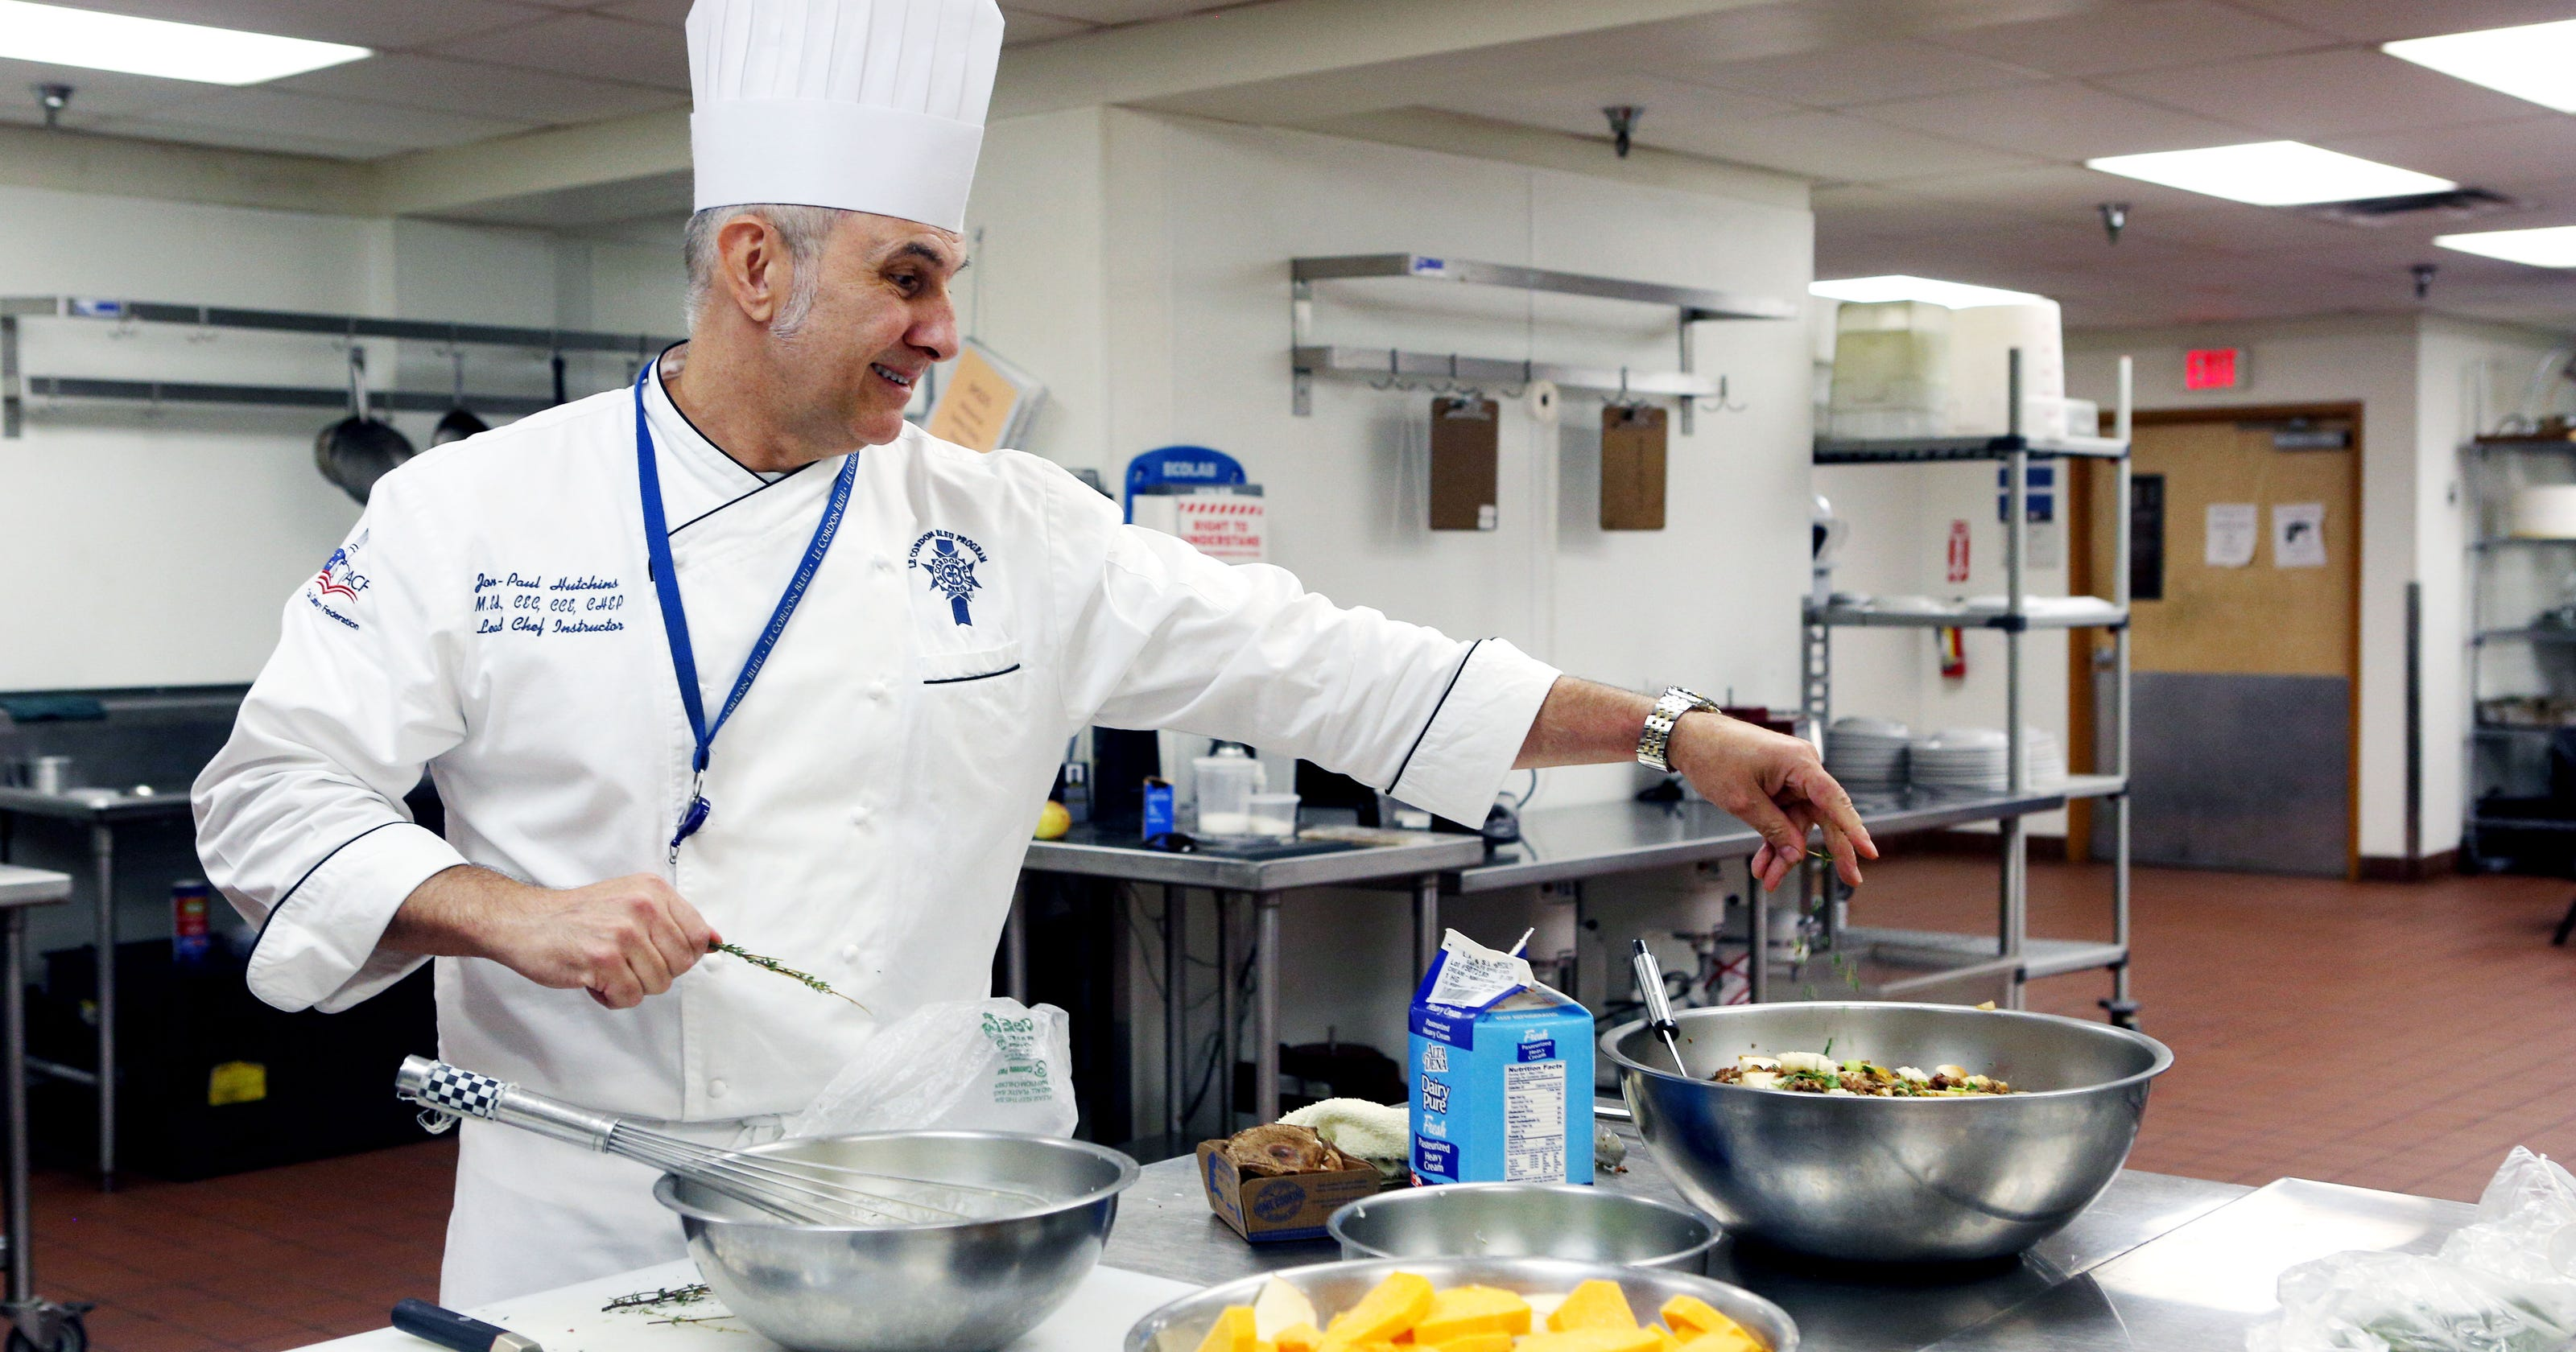 Scottsdale Culinary Institute Closes Who Will Fill Restaurant Jobs